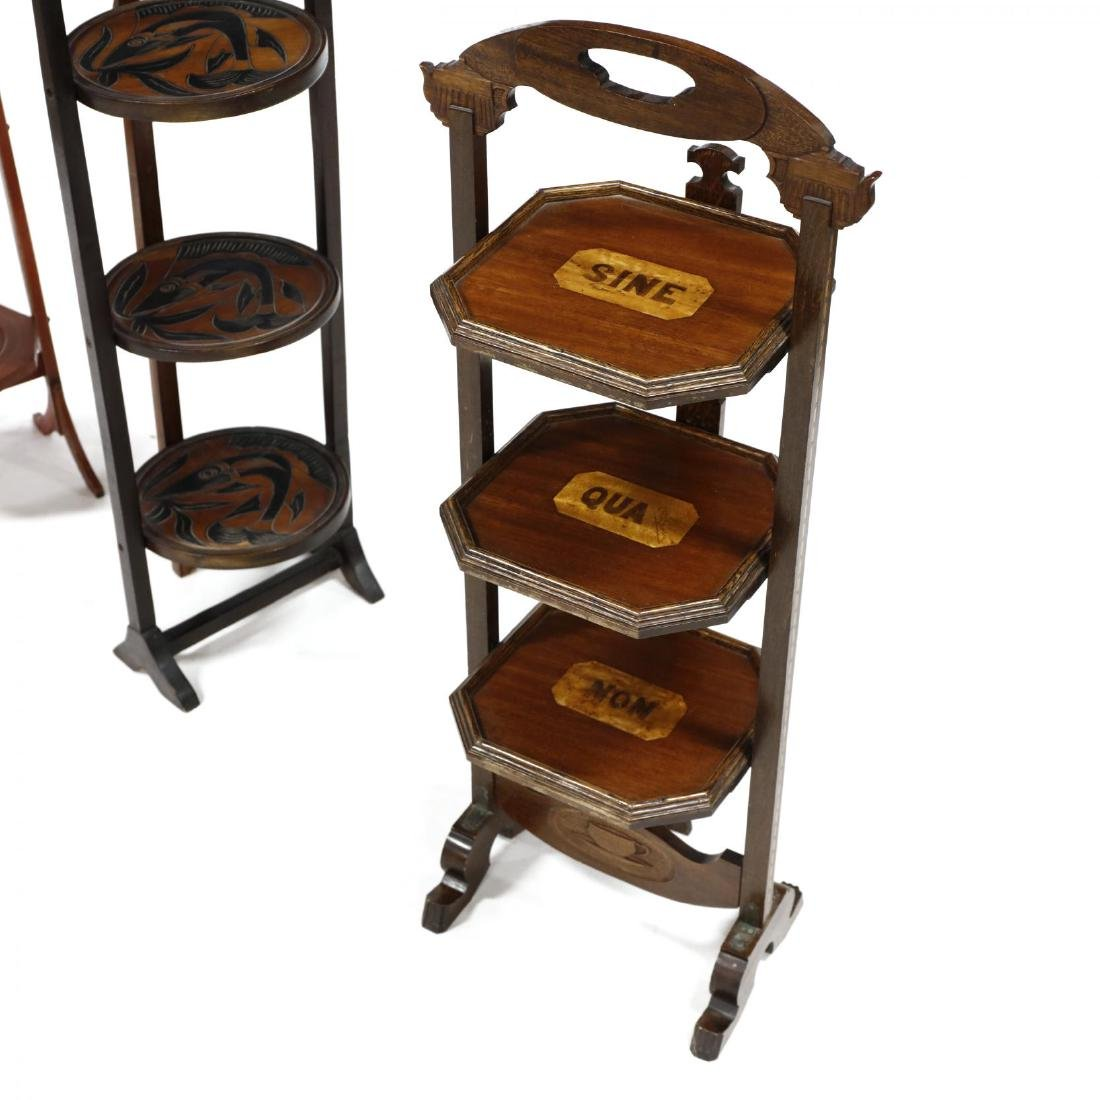 Four Vintage Muffin Stands - 2